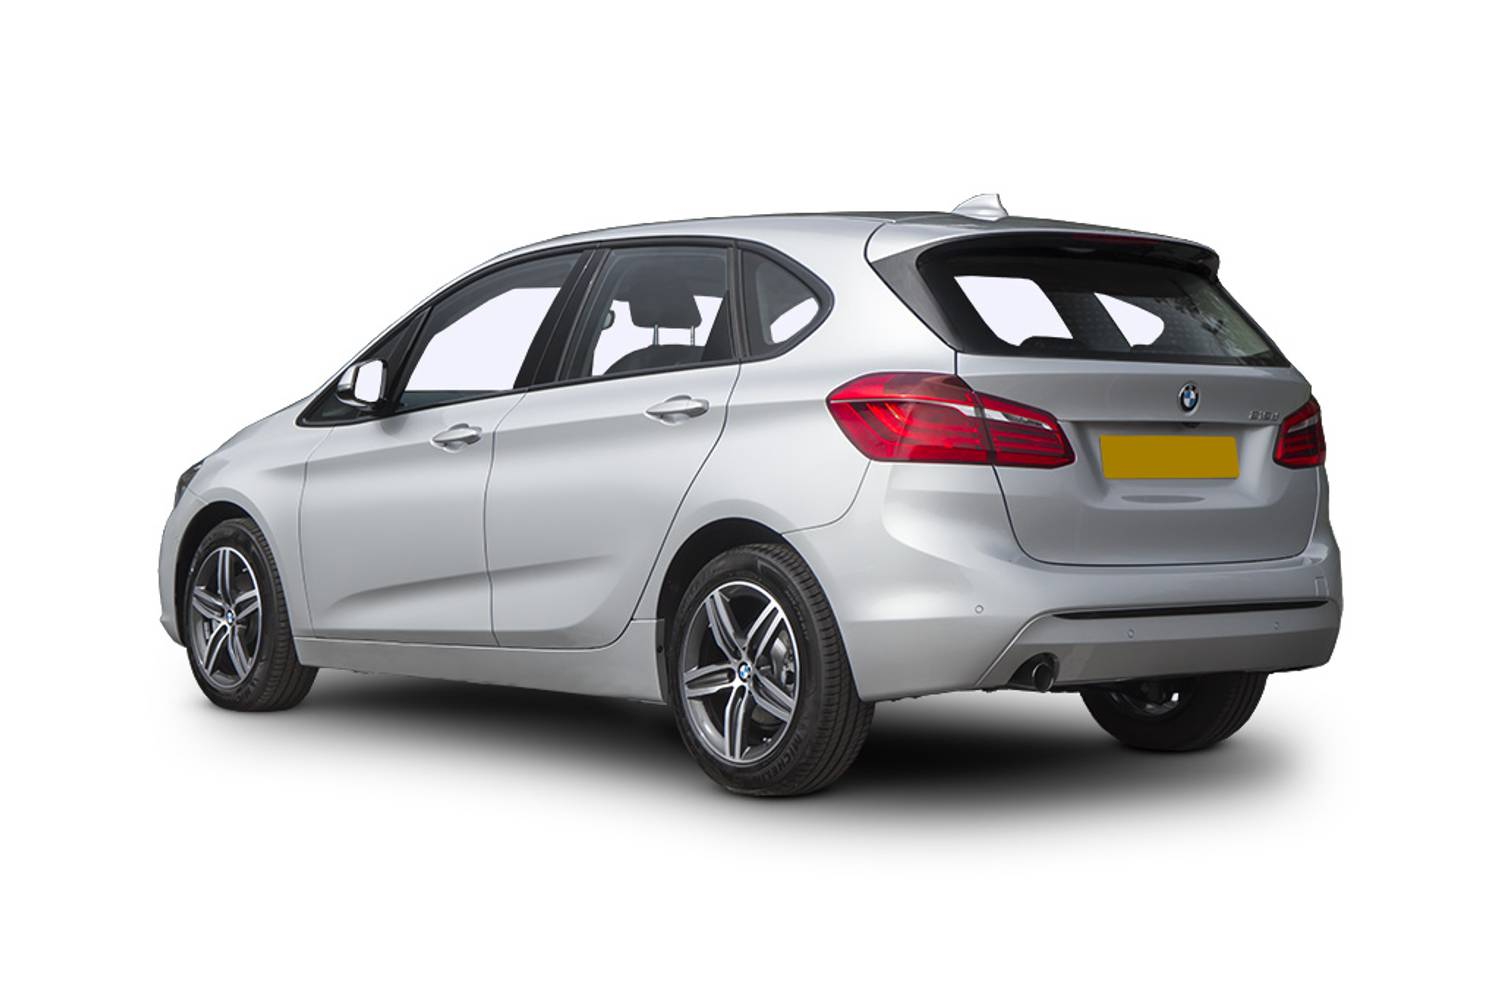 new bmw 2 series active tourer 225xe sport 5 door nav auto 2016 for sale. Black Bedroom Furniture Sets. Home Design Ideas